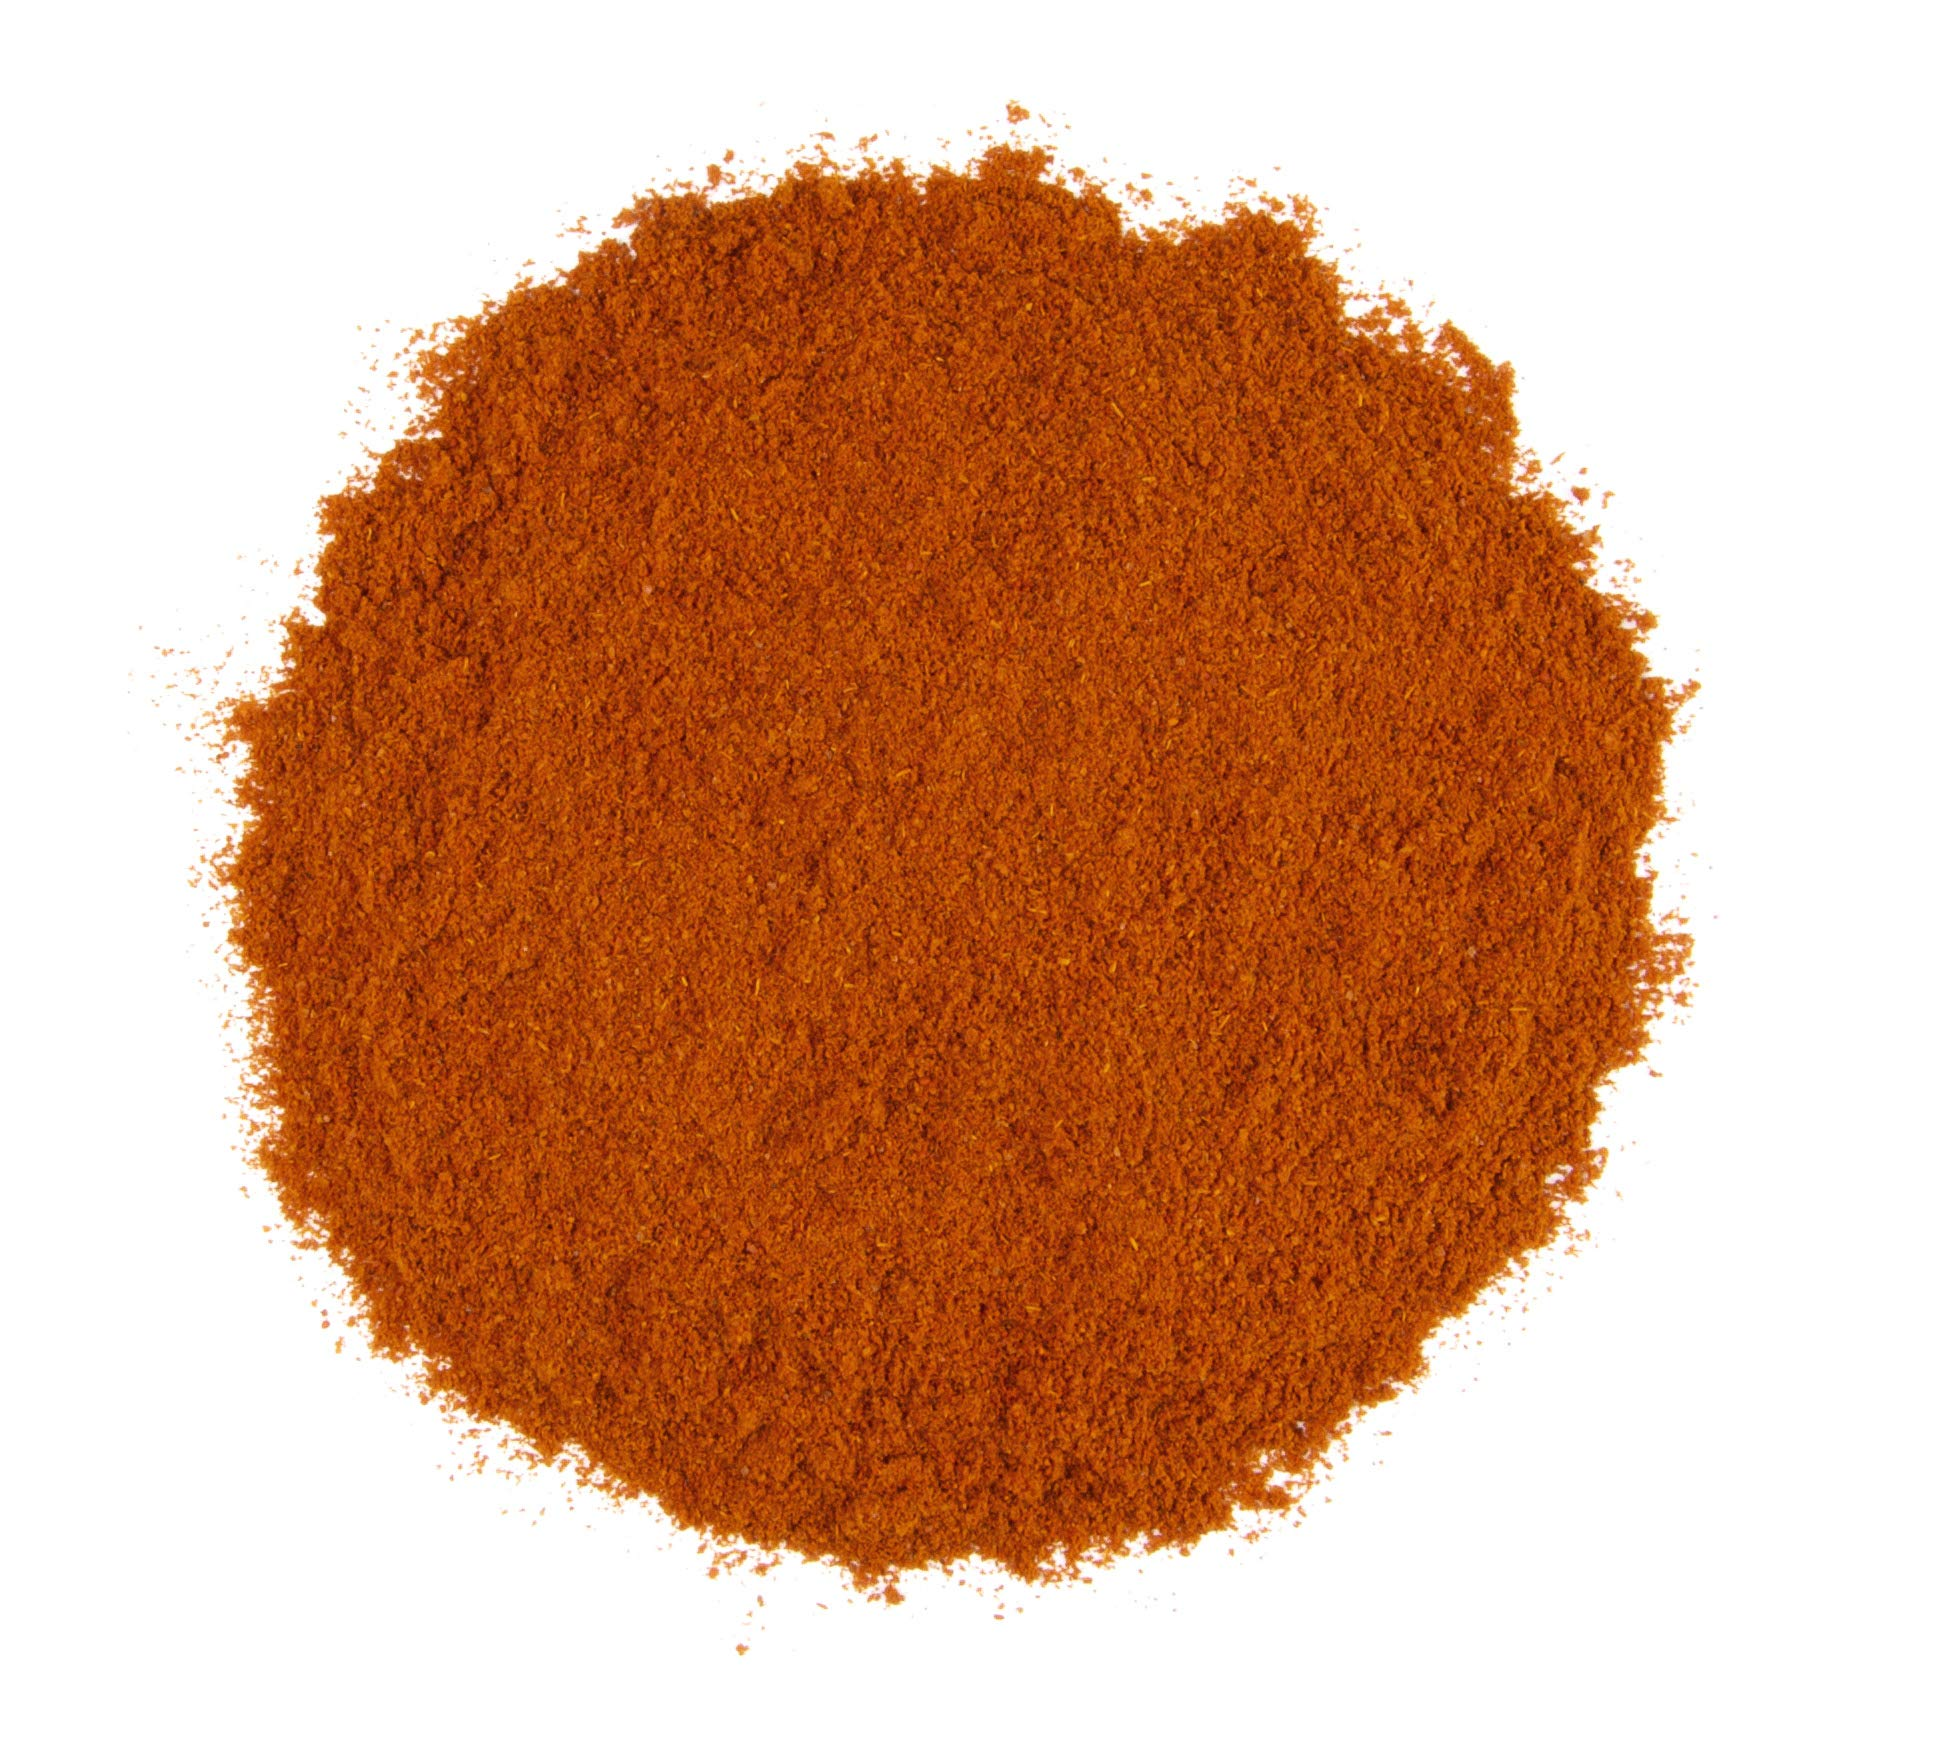 Ground Cayenne Pepper : SOME LIKE IT HOT! - This Cayenne pepper is hotter than most, its perfect to really kick it up a notch (1.9oz.)